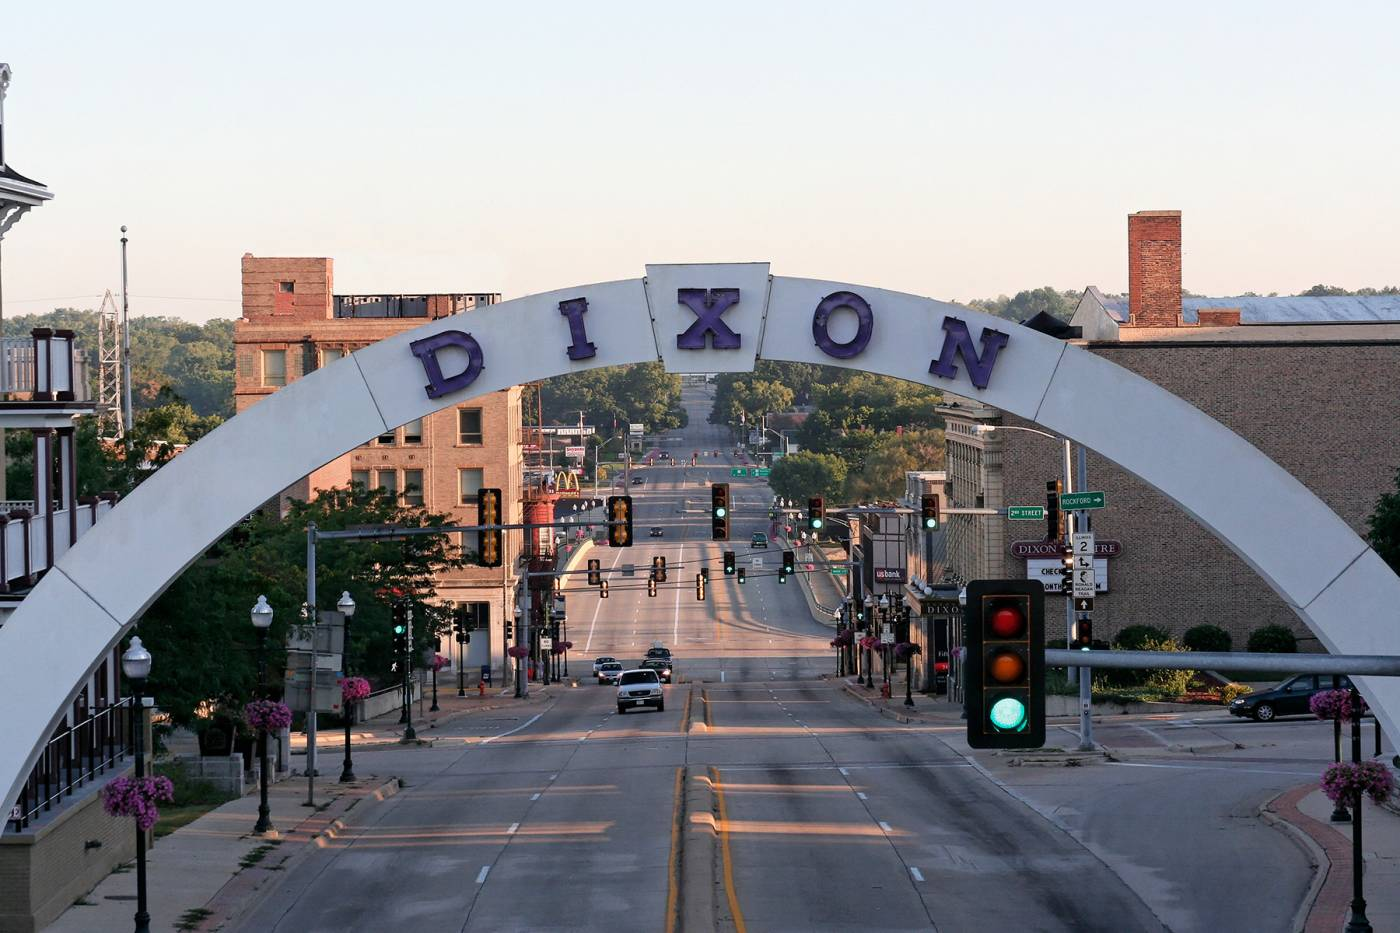 City of Dixon Government